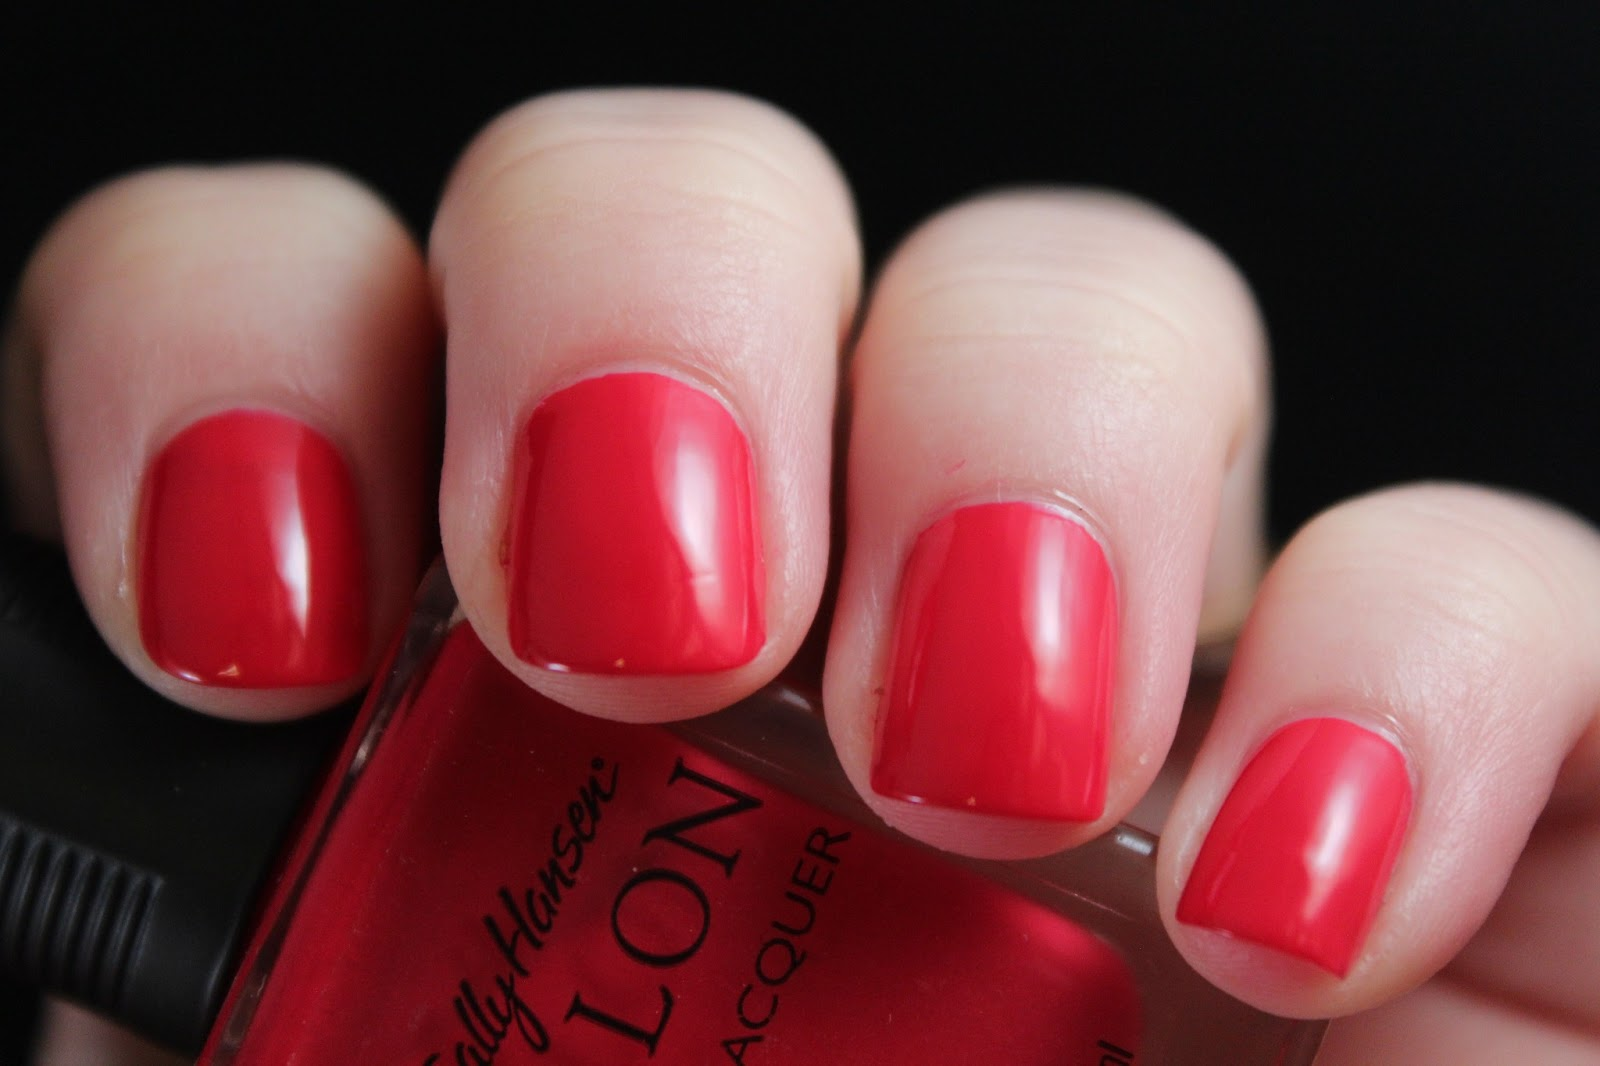 Red- Today we have Sally Hansen Salon Cherry Nice - two coats, smooth ...